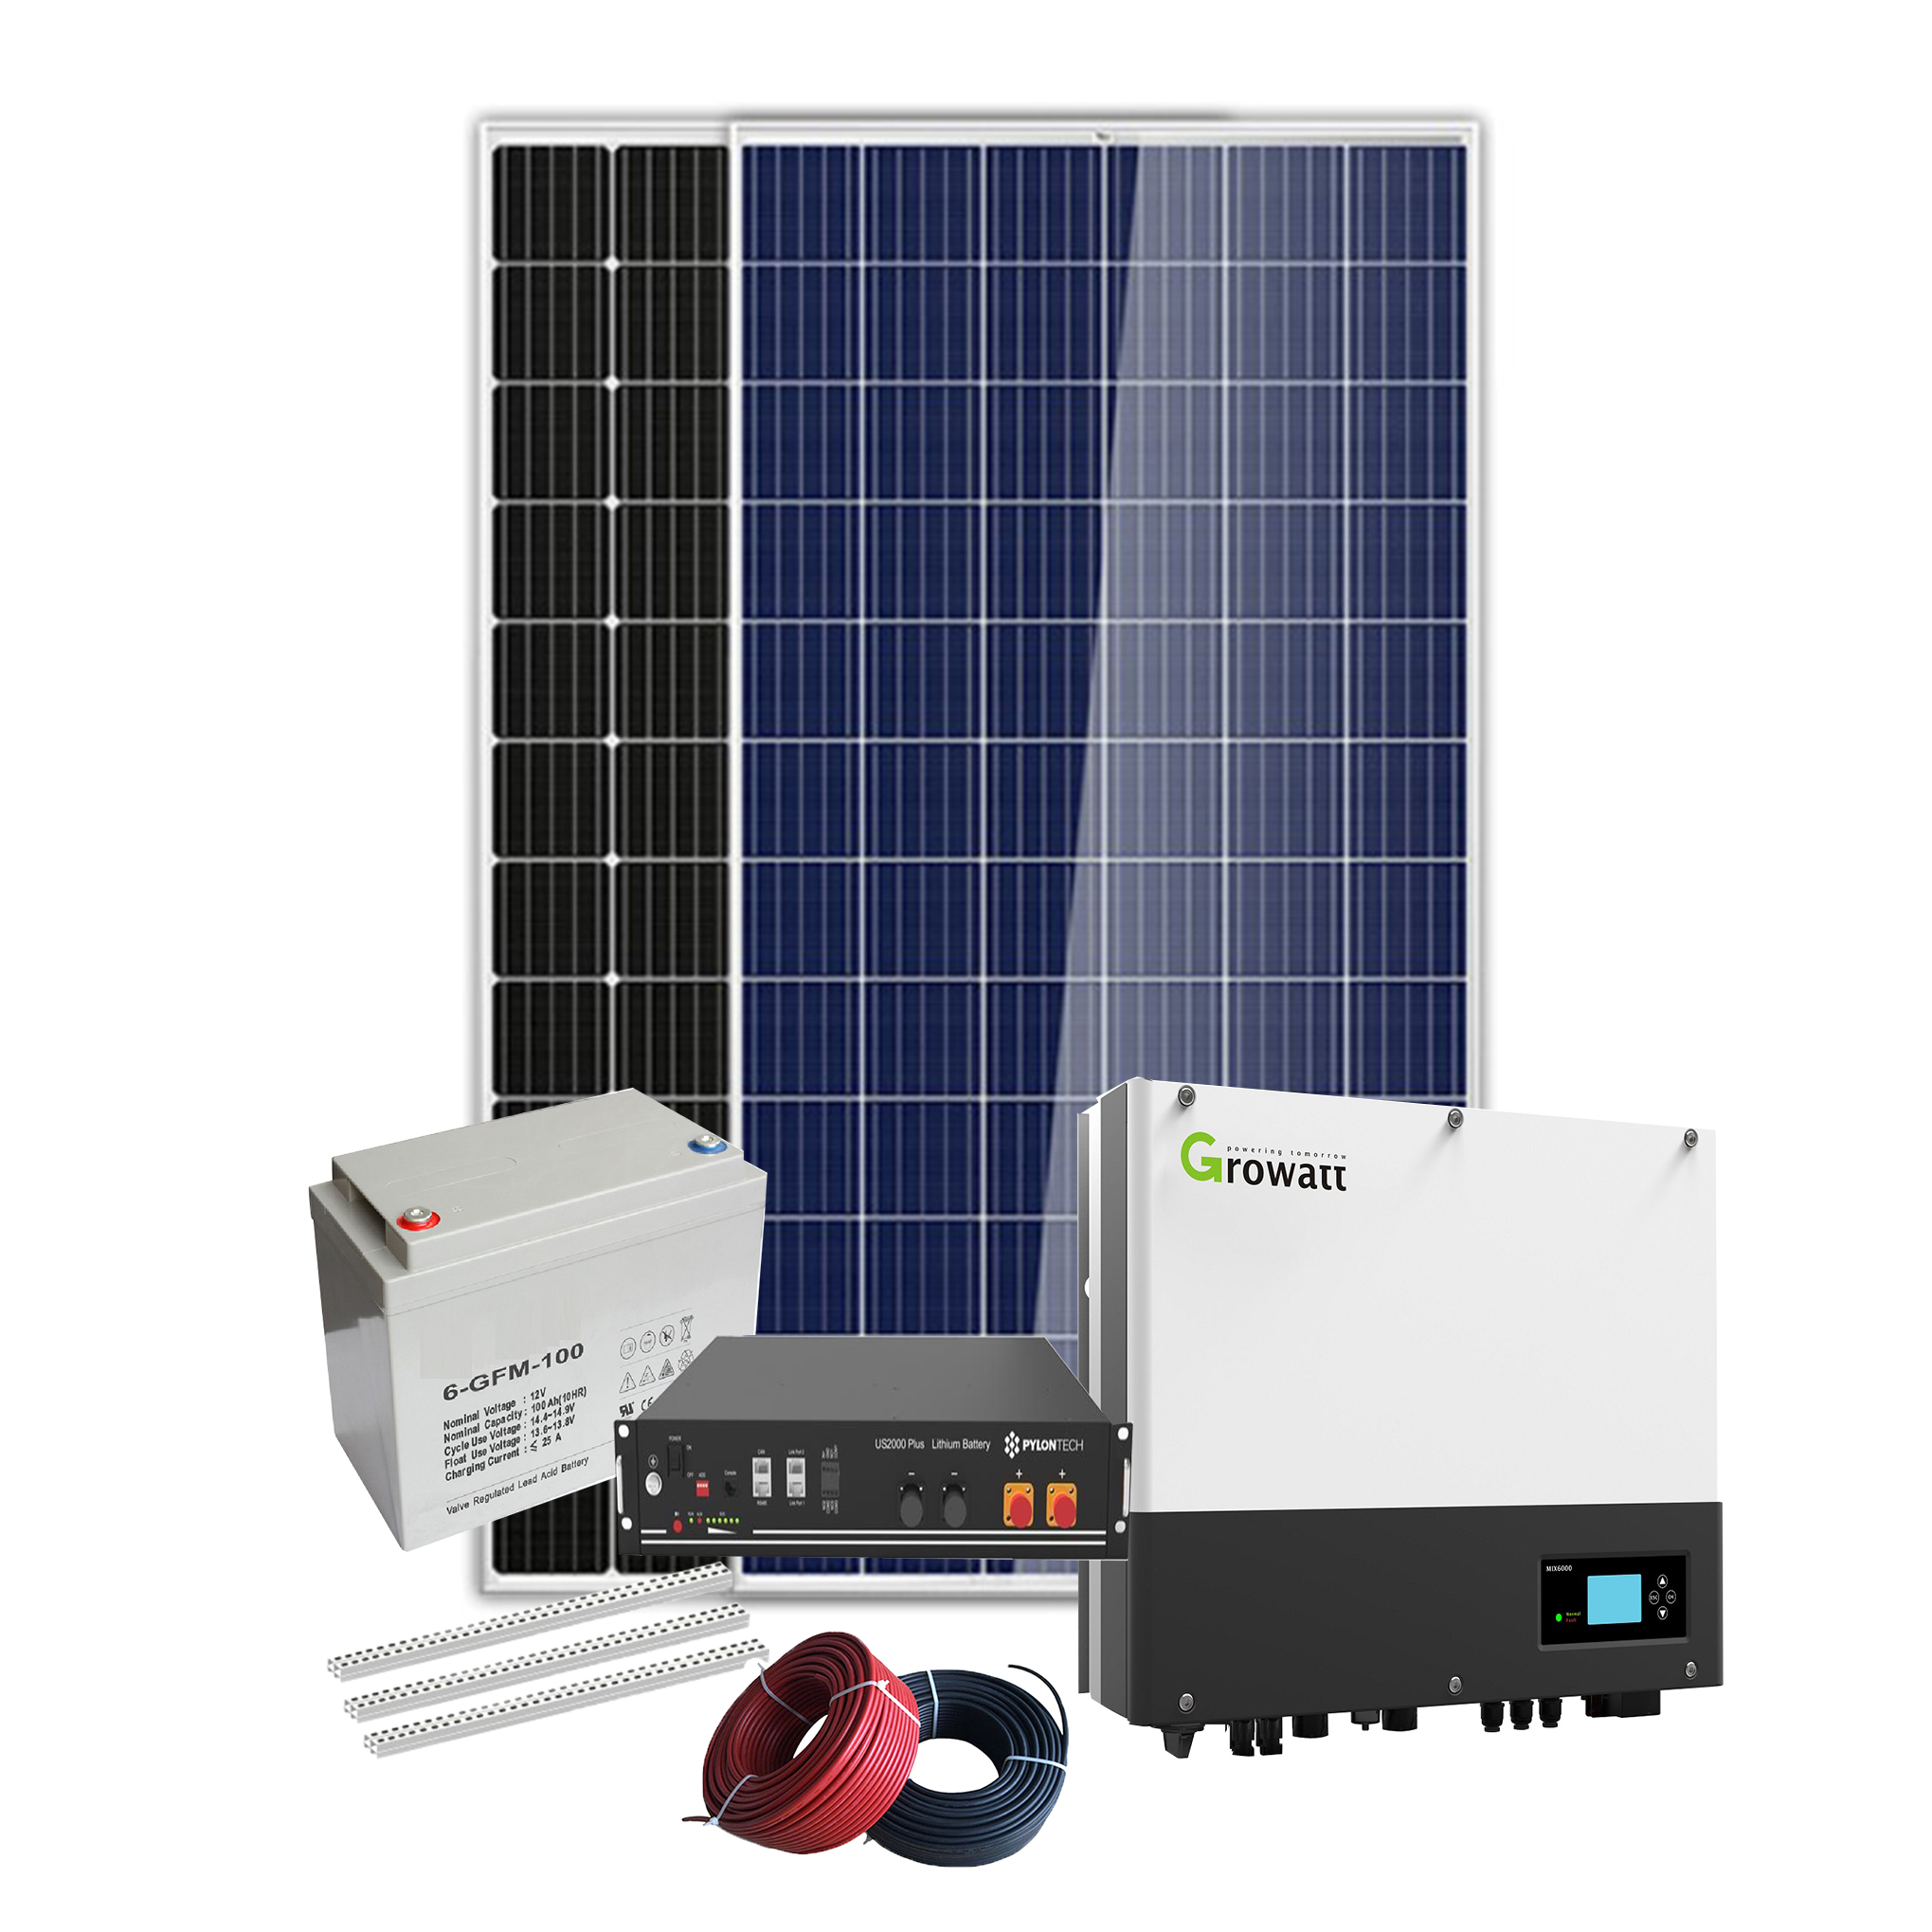 Wholesale 8000 watt power <strong>energy</strong> 1kw grid tied solar <strong>energy</strong> system for home for boat bar power supply